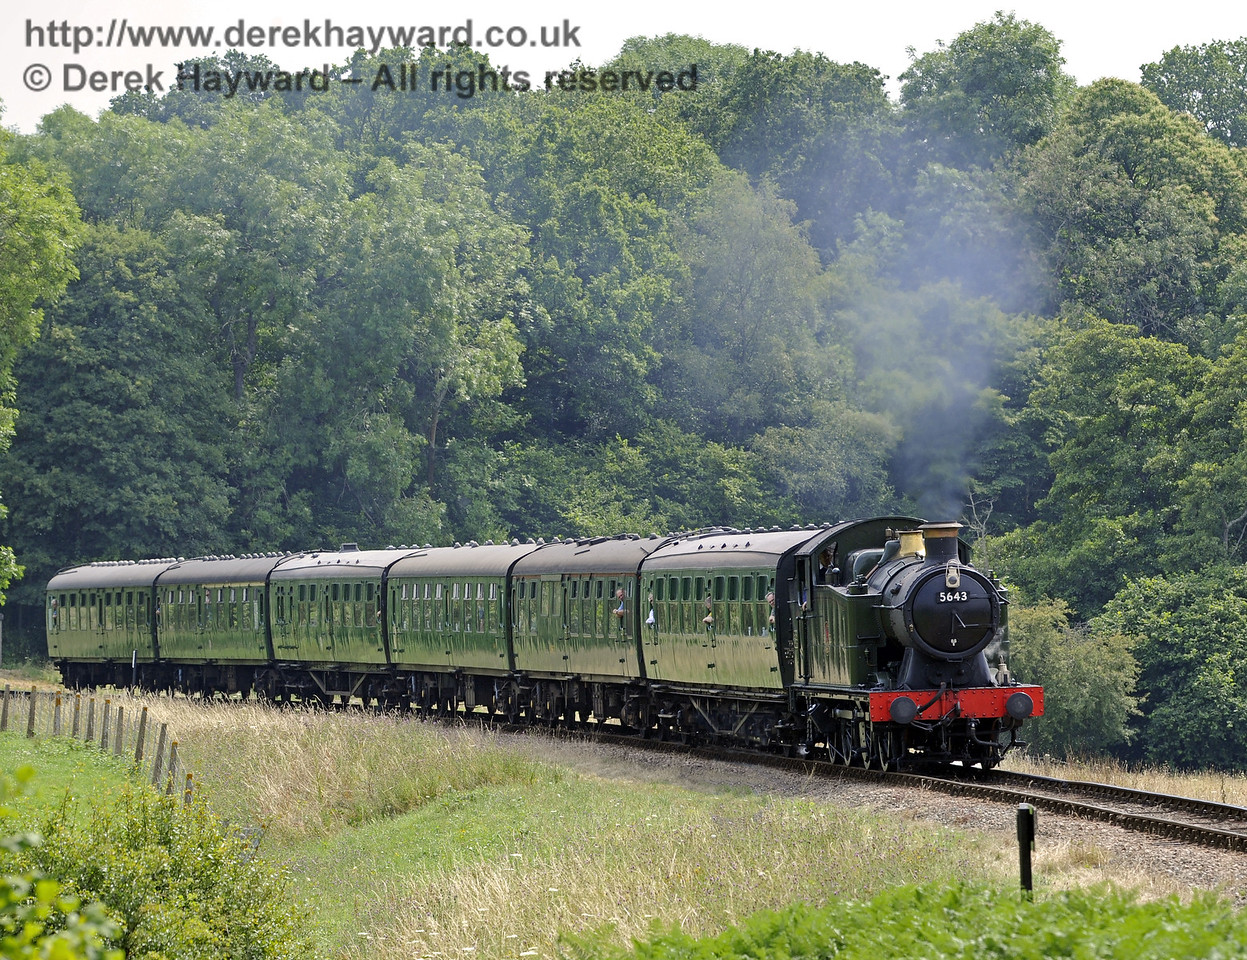 5643 steams towards New Road Bridge.  26.07.2014  9894